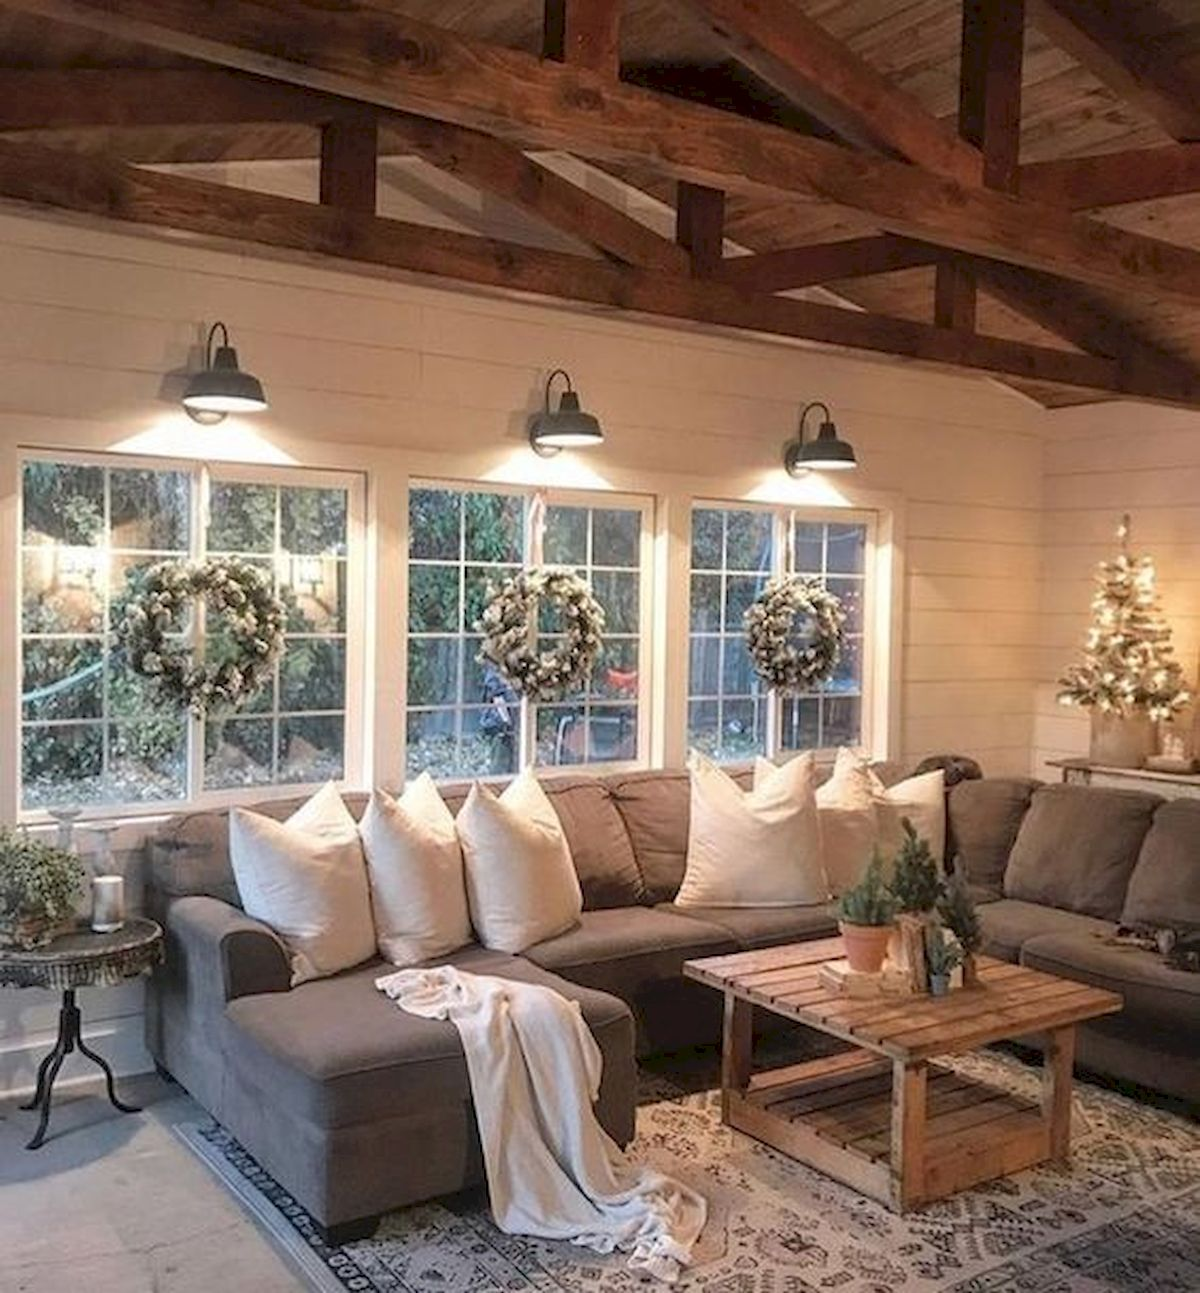 33 Stunning Farmhouse Living Room Lamps Design Ideas And Decor (12)